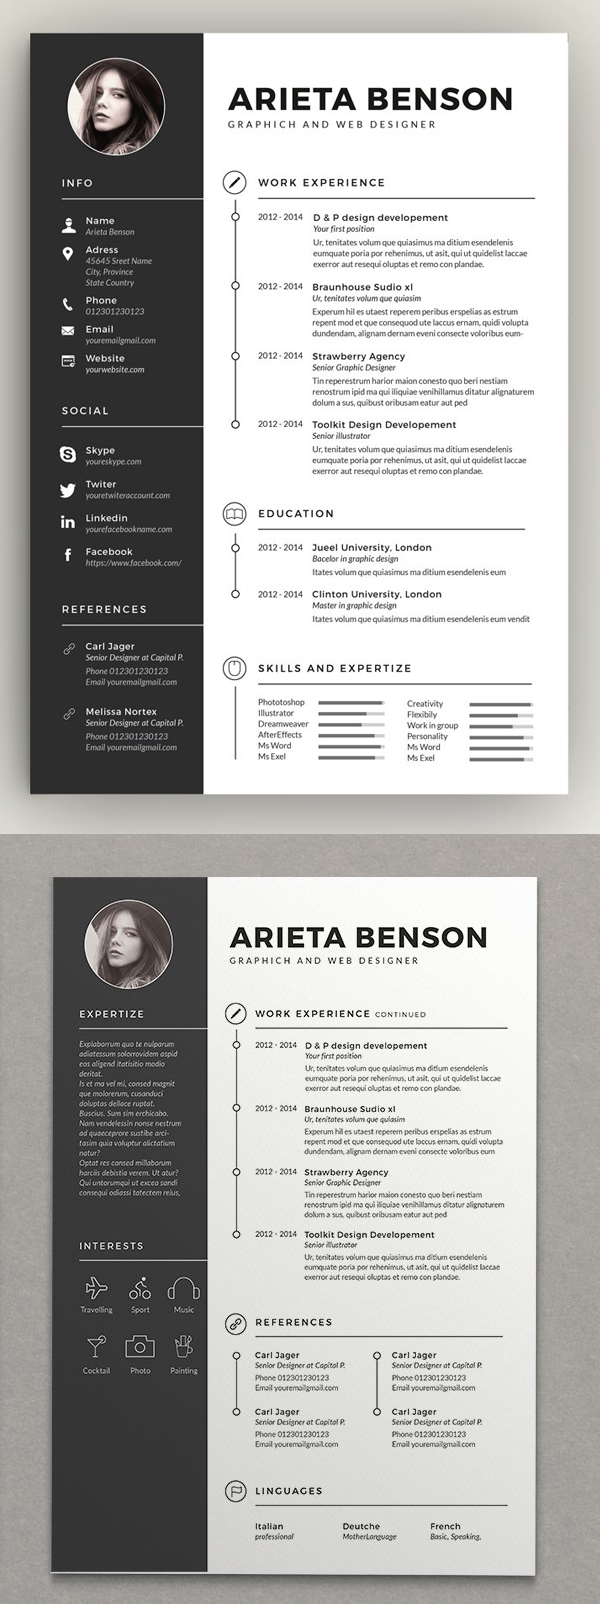 50 Best Resume Templates Of 2020 - 1